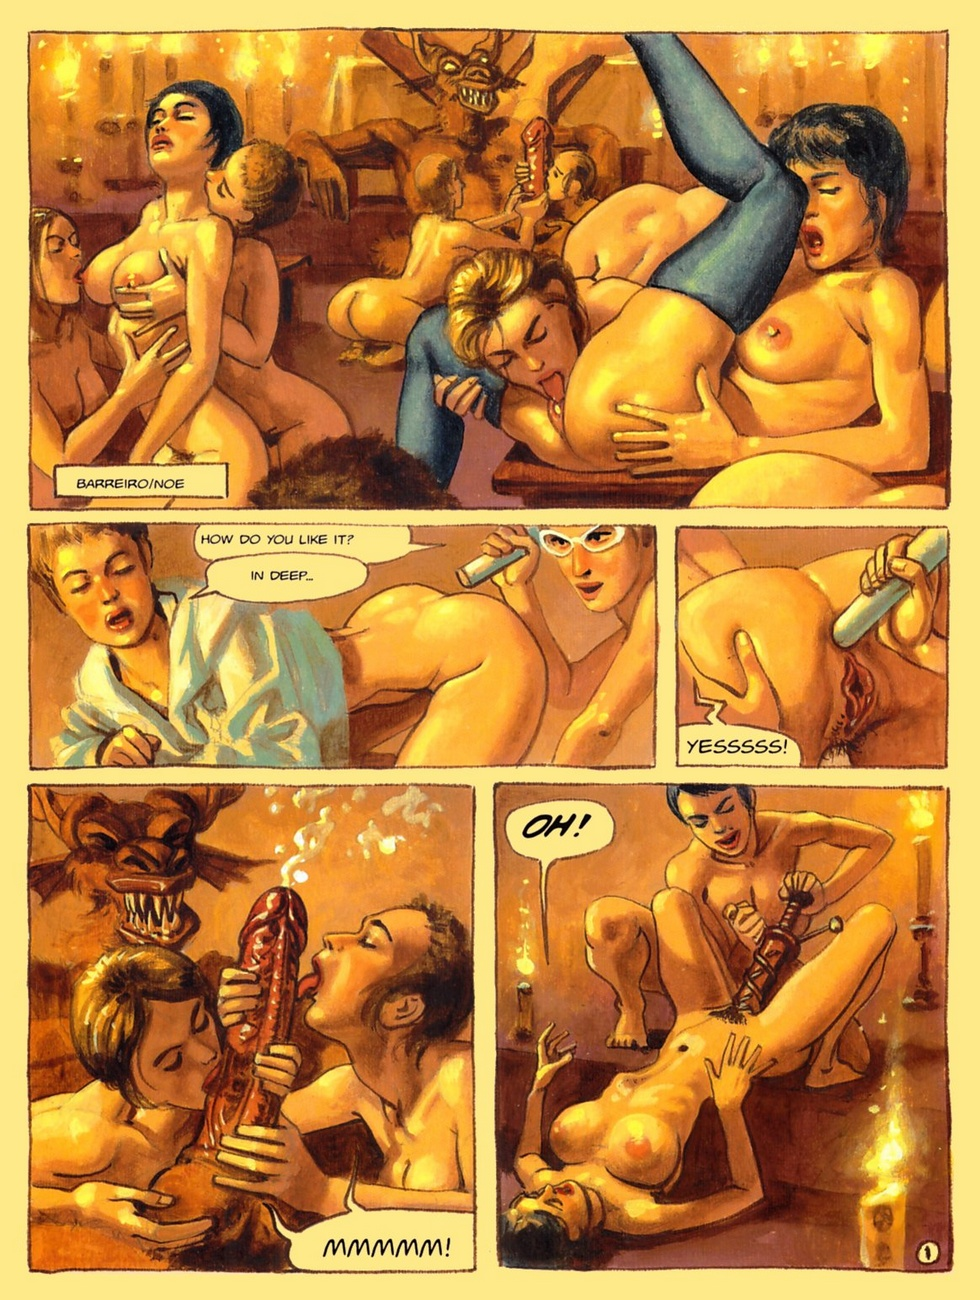 Apologise, anal sex comix gallery apologise, but